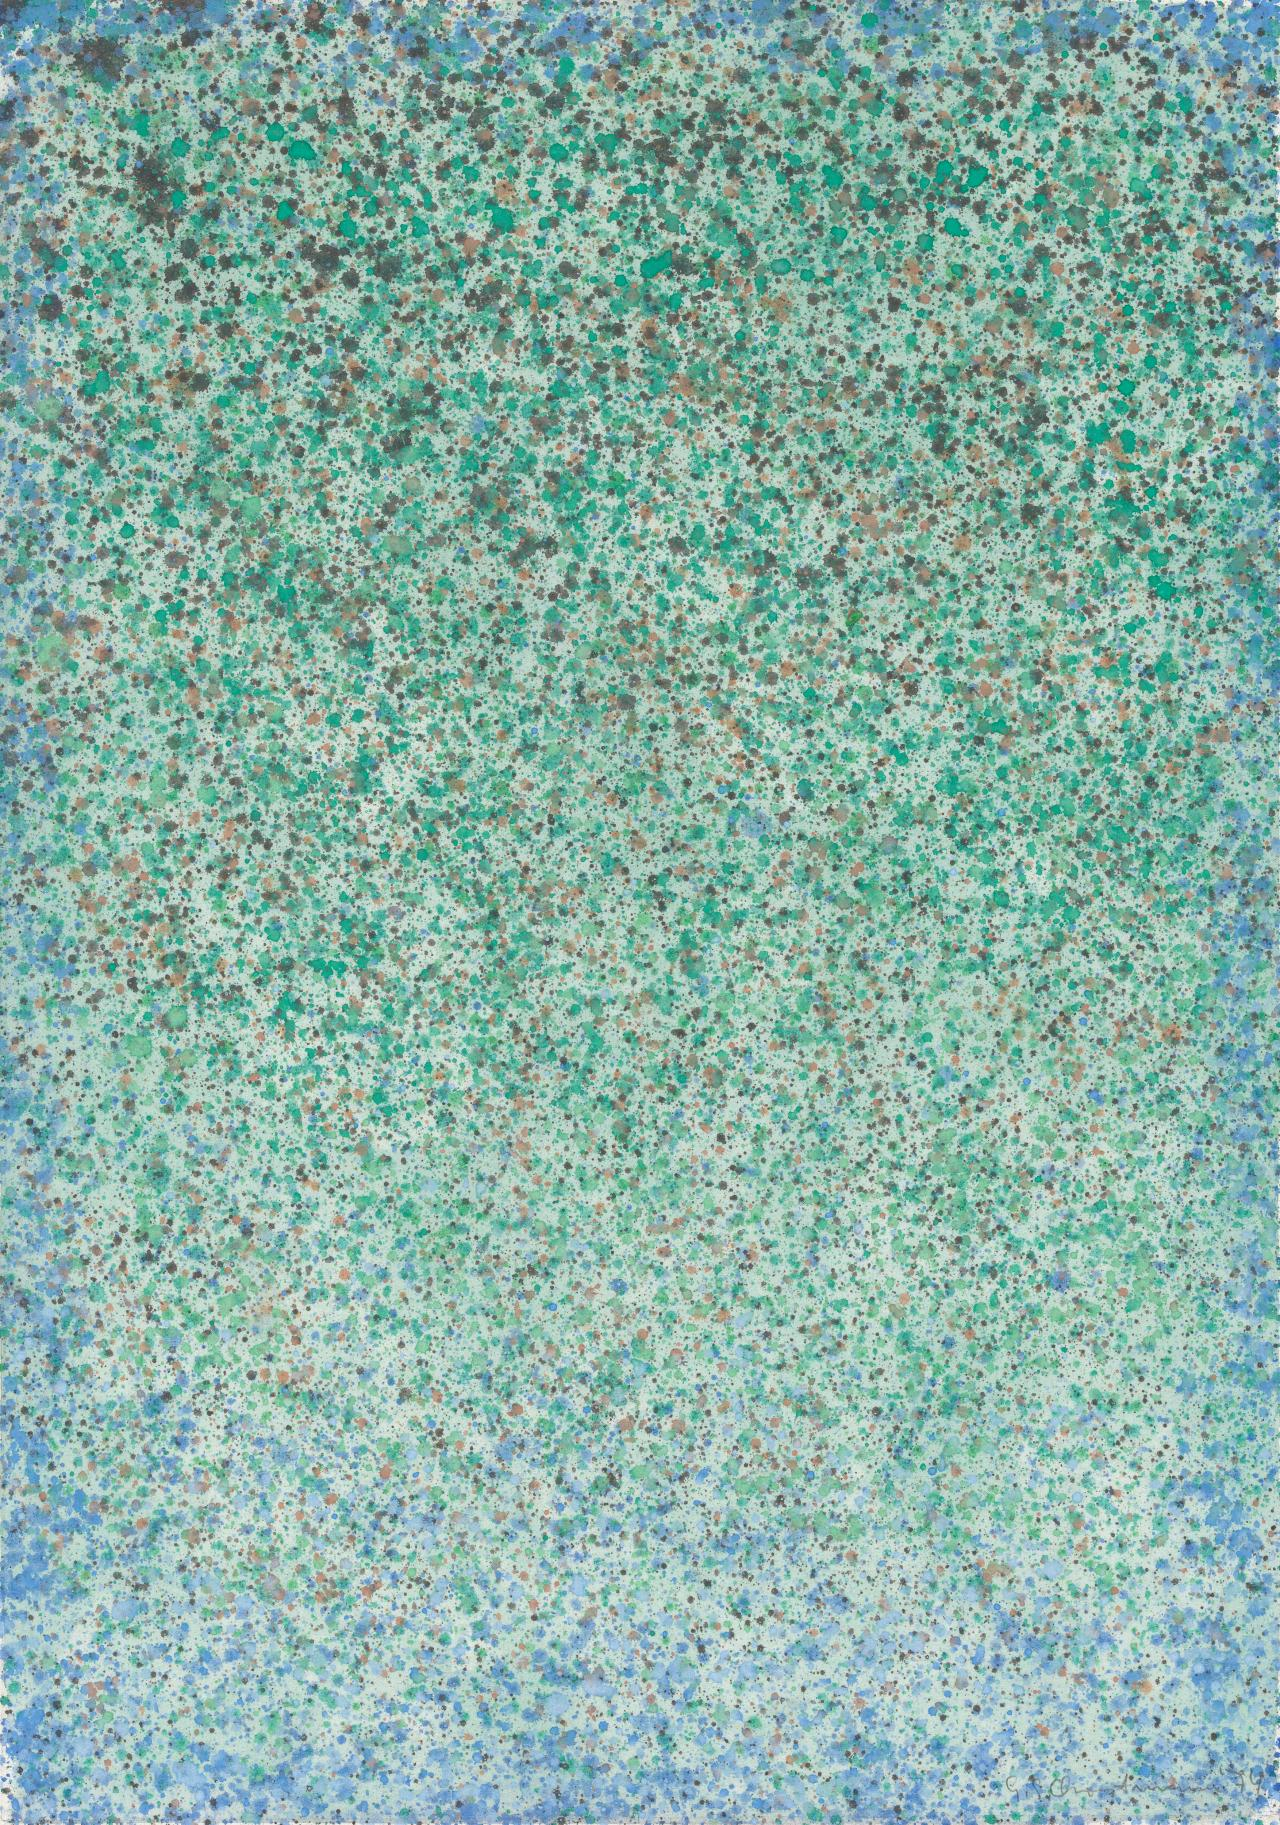 (Untitled) (Blue and green spatter)